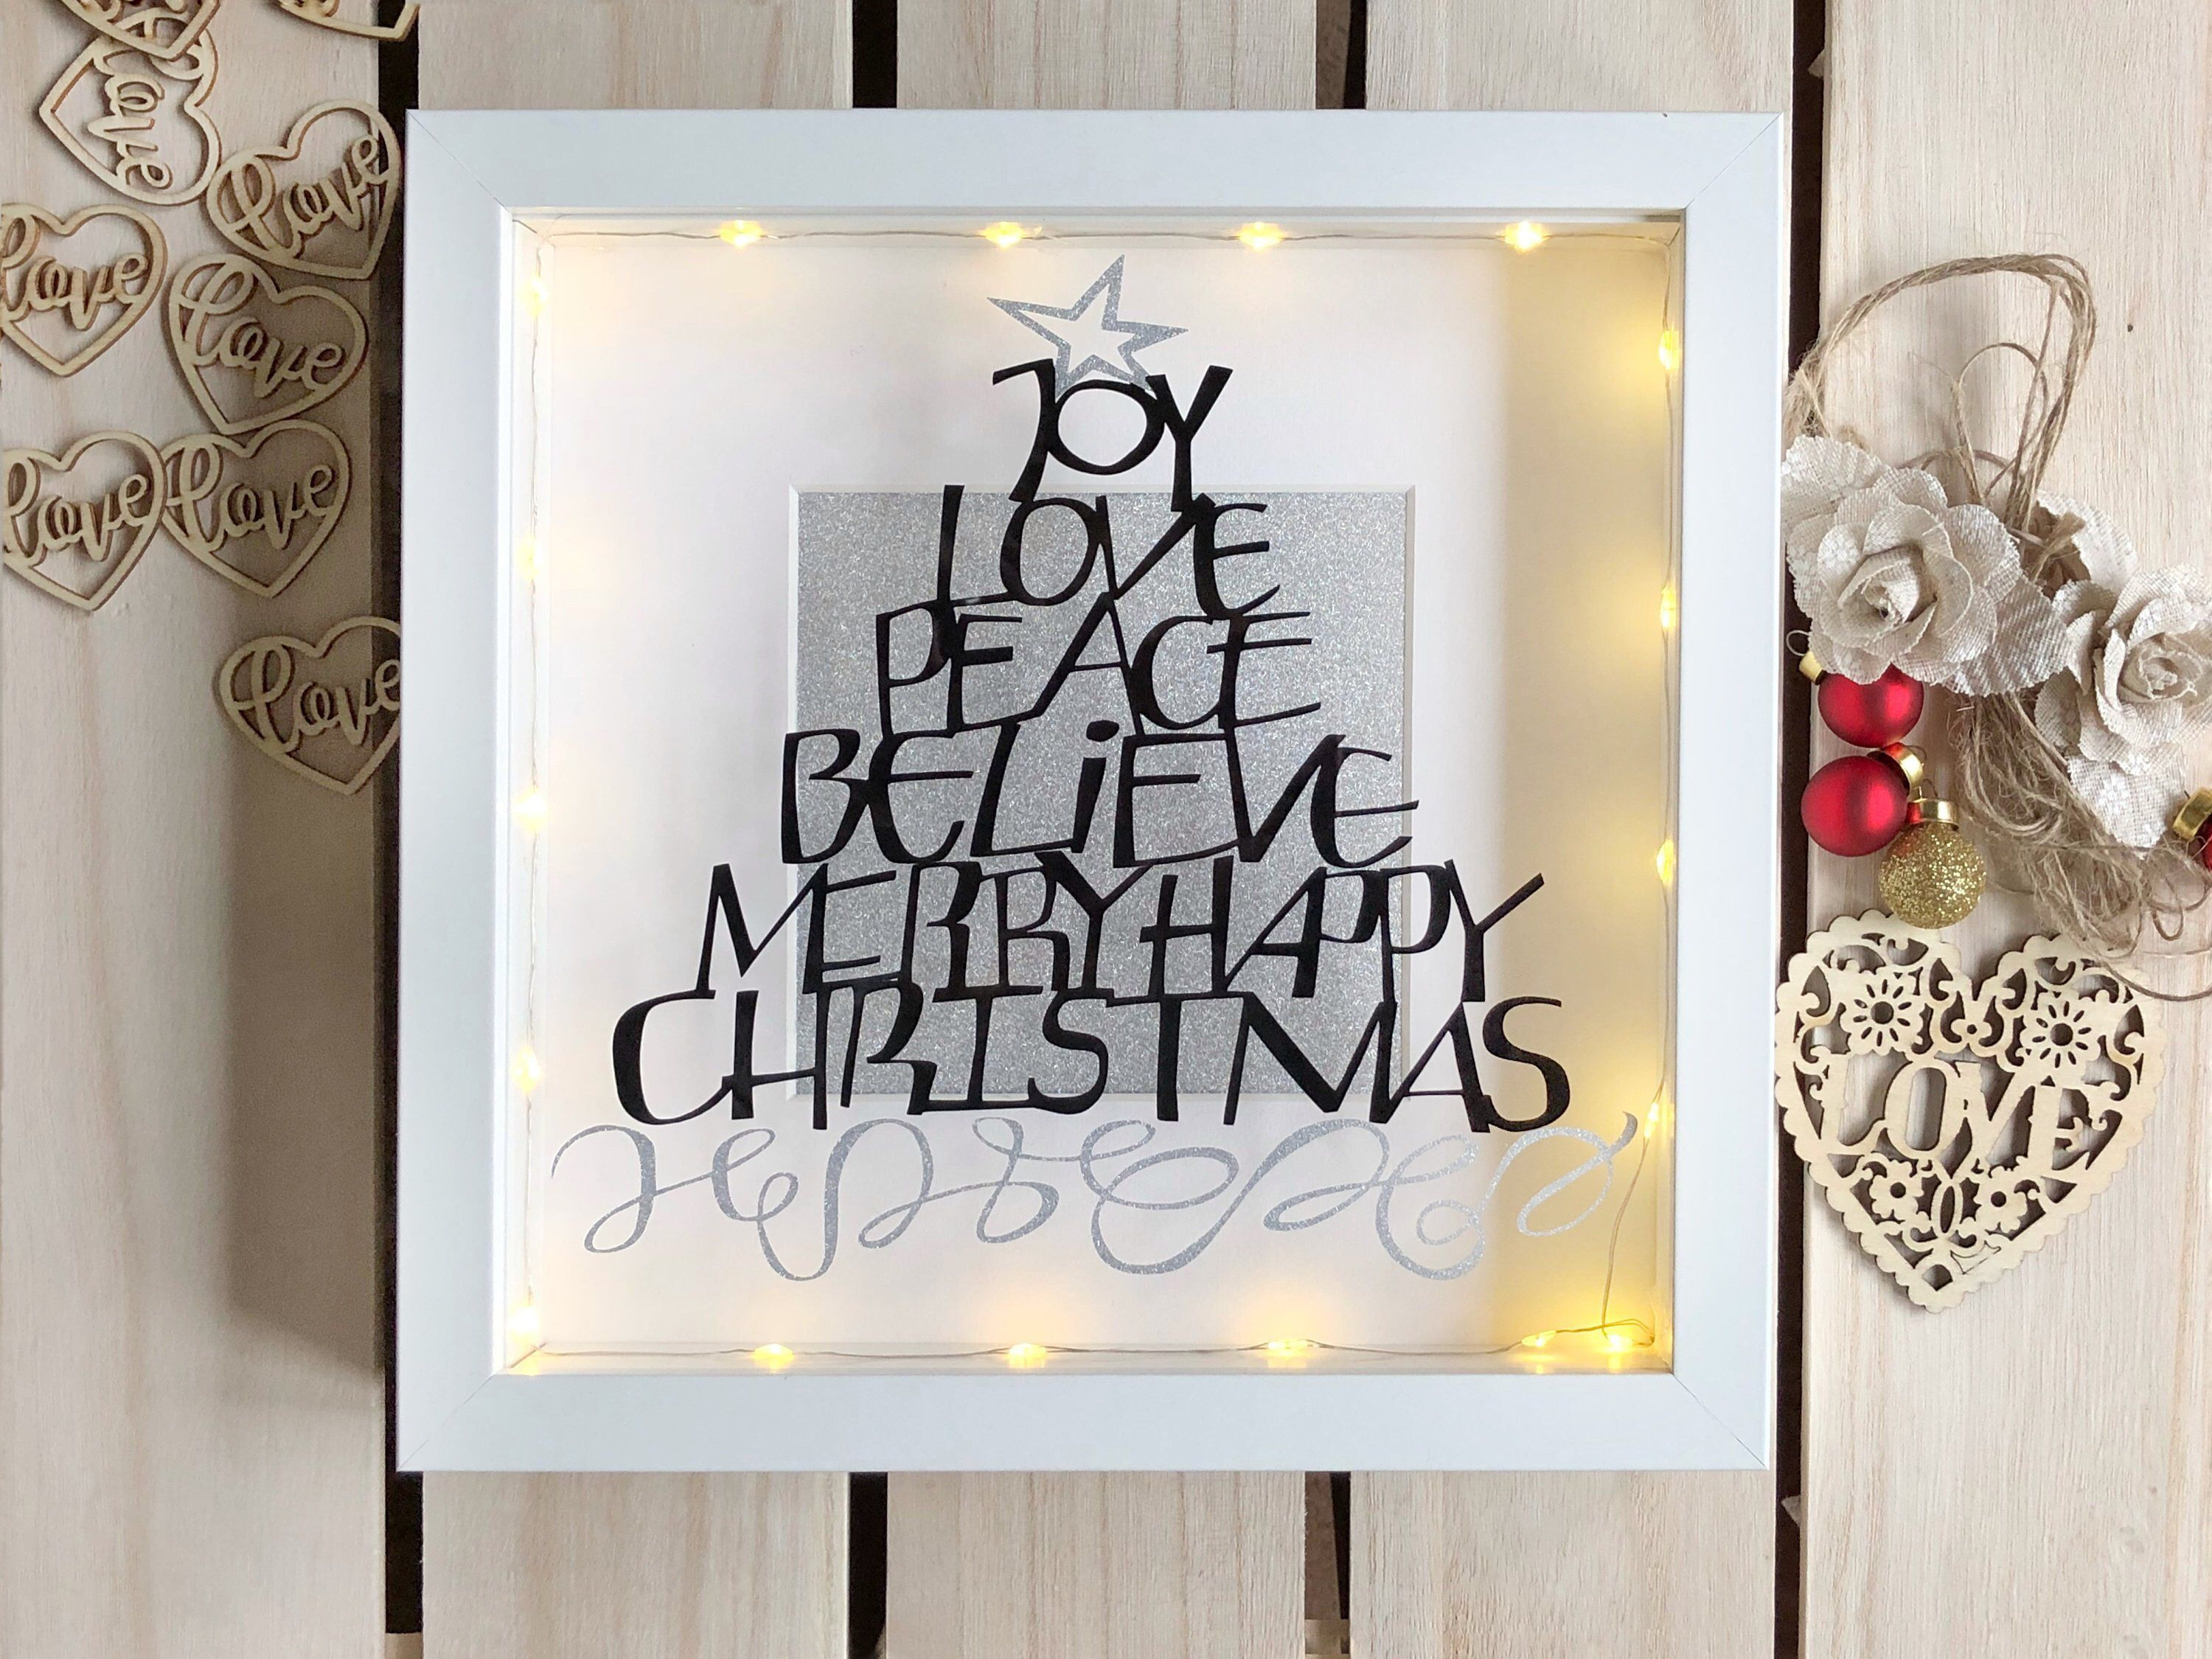 Excited To Share This Item From Our Etsy Shop Christmas Light Up Box Frame Decoration Vinyl Christmas Qu Box Frames Christmas Lights Christmas Tree Light Up